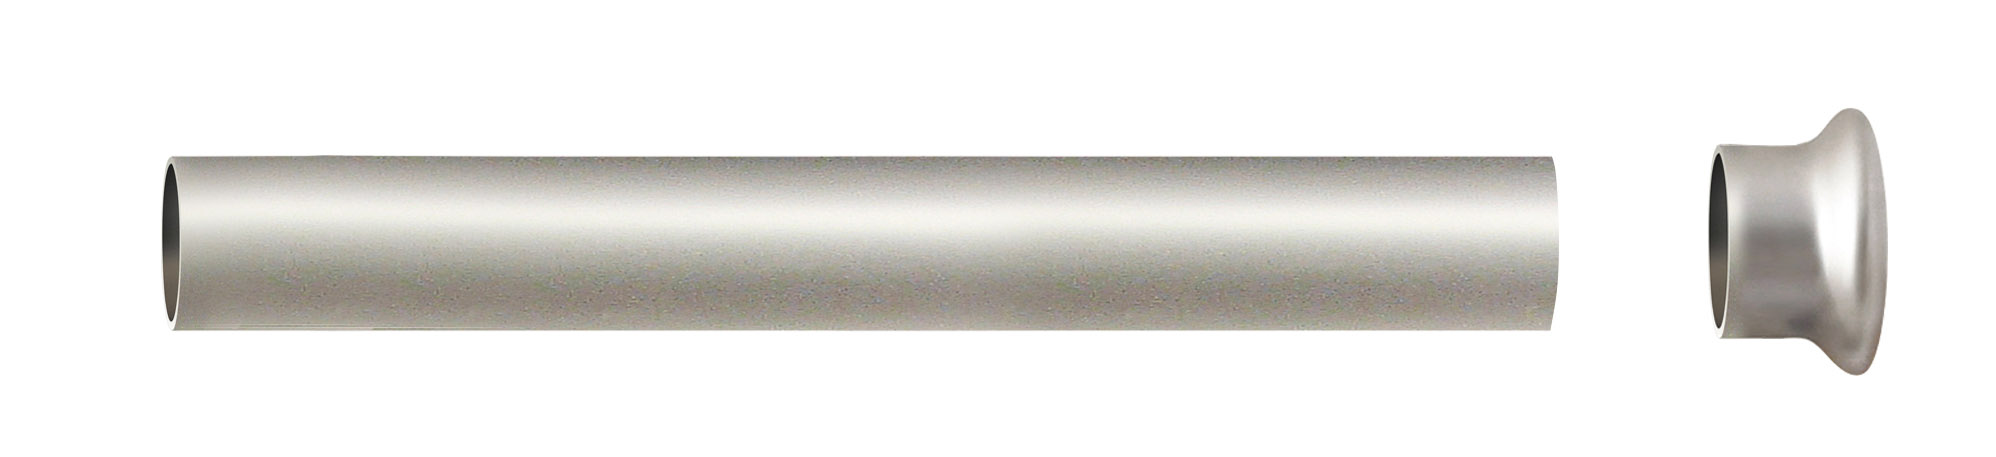 Tube Nu Nickel Matt 1 m 50 diam 28 mm (Nickel)